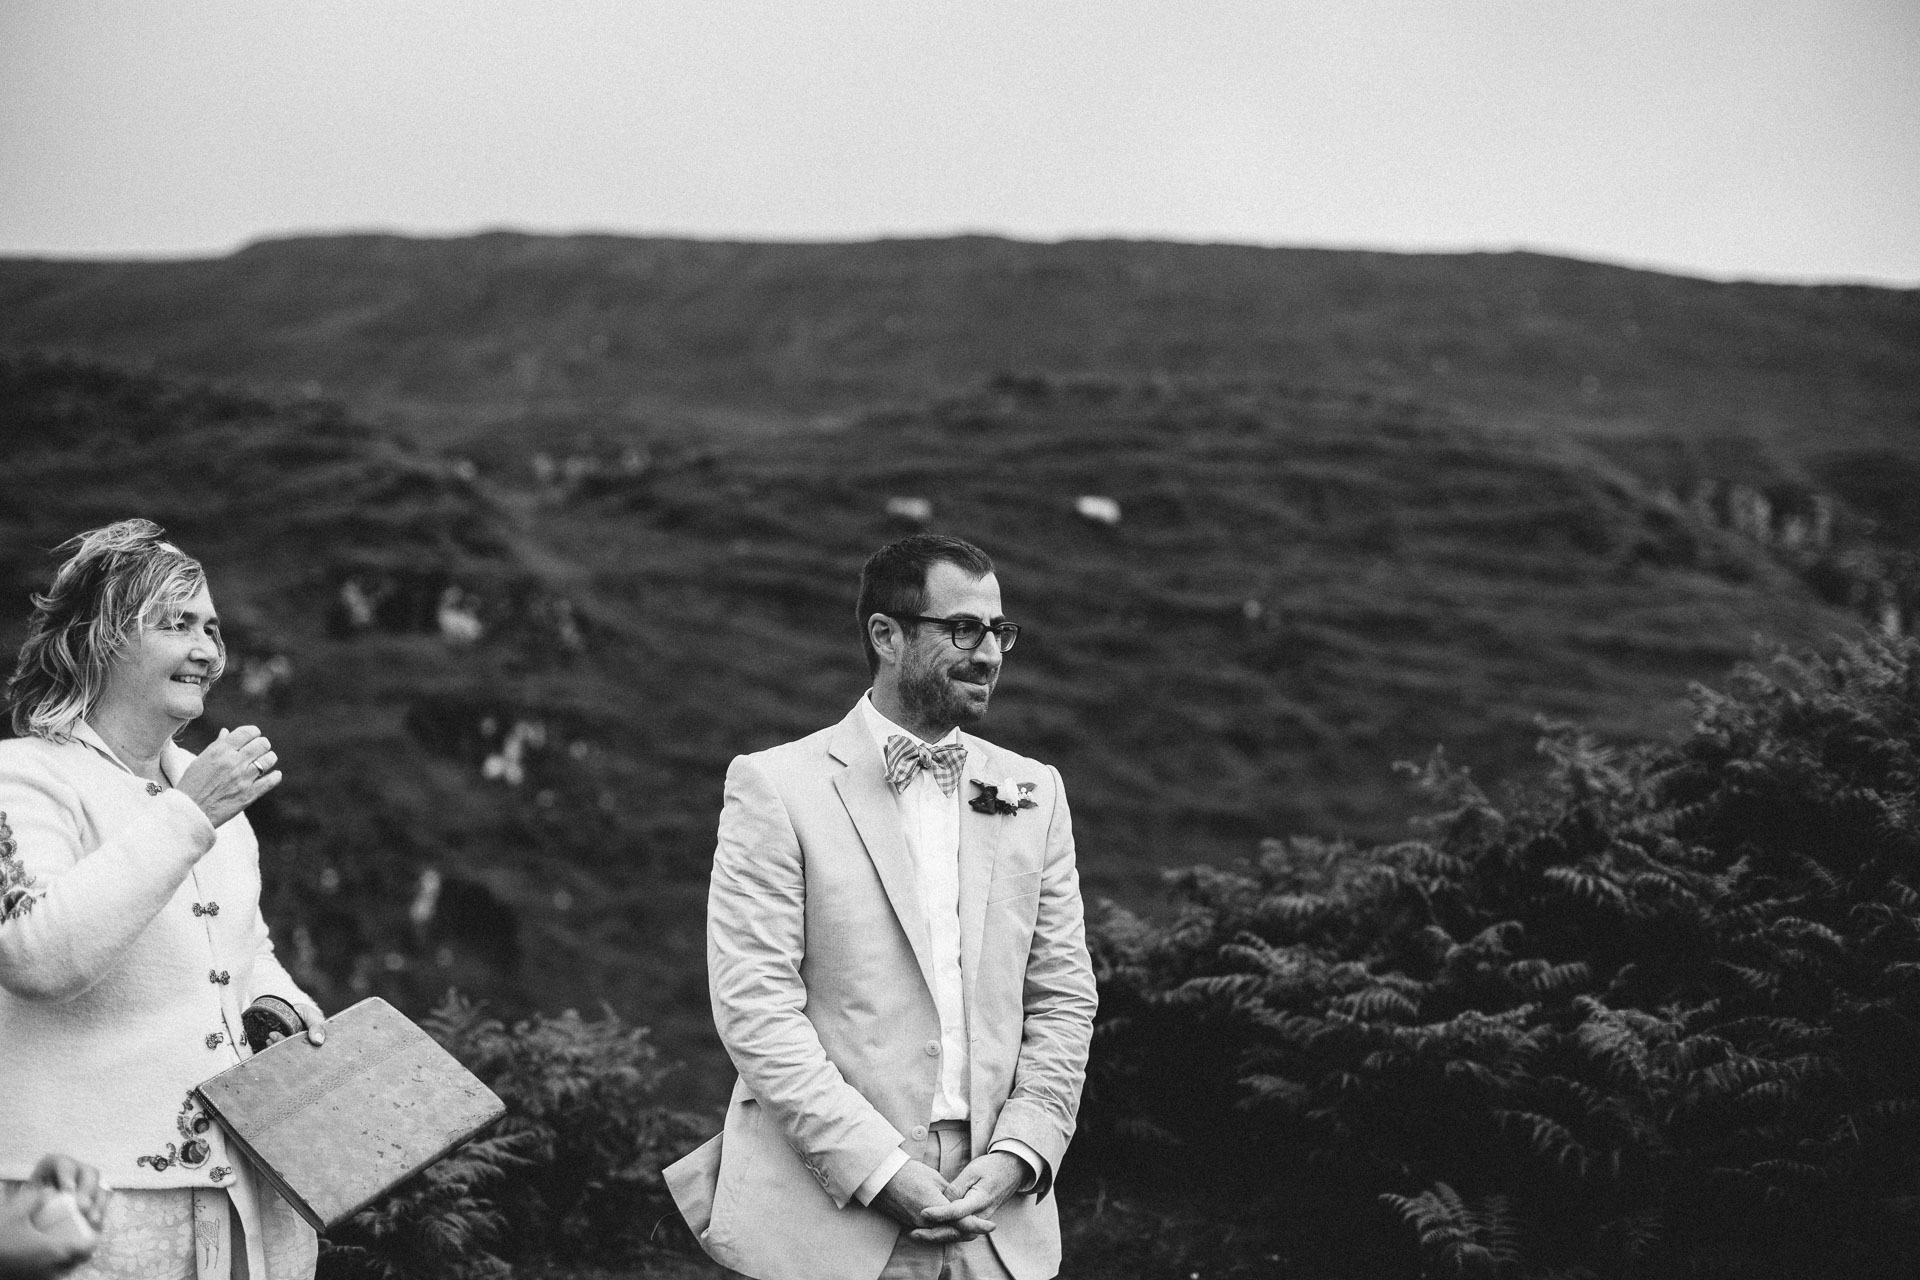 Megan_Matt_Elopement_IntimateWedding_Scotland_IsleOfSkye_JeanLaurentGaudy_067